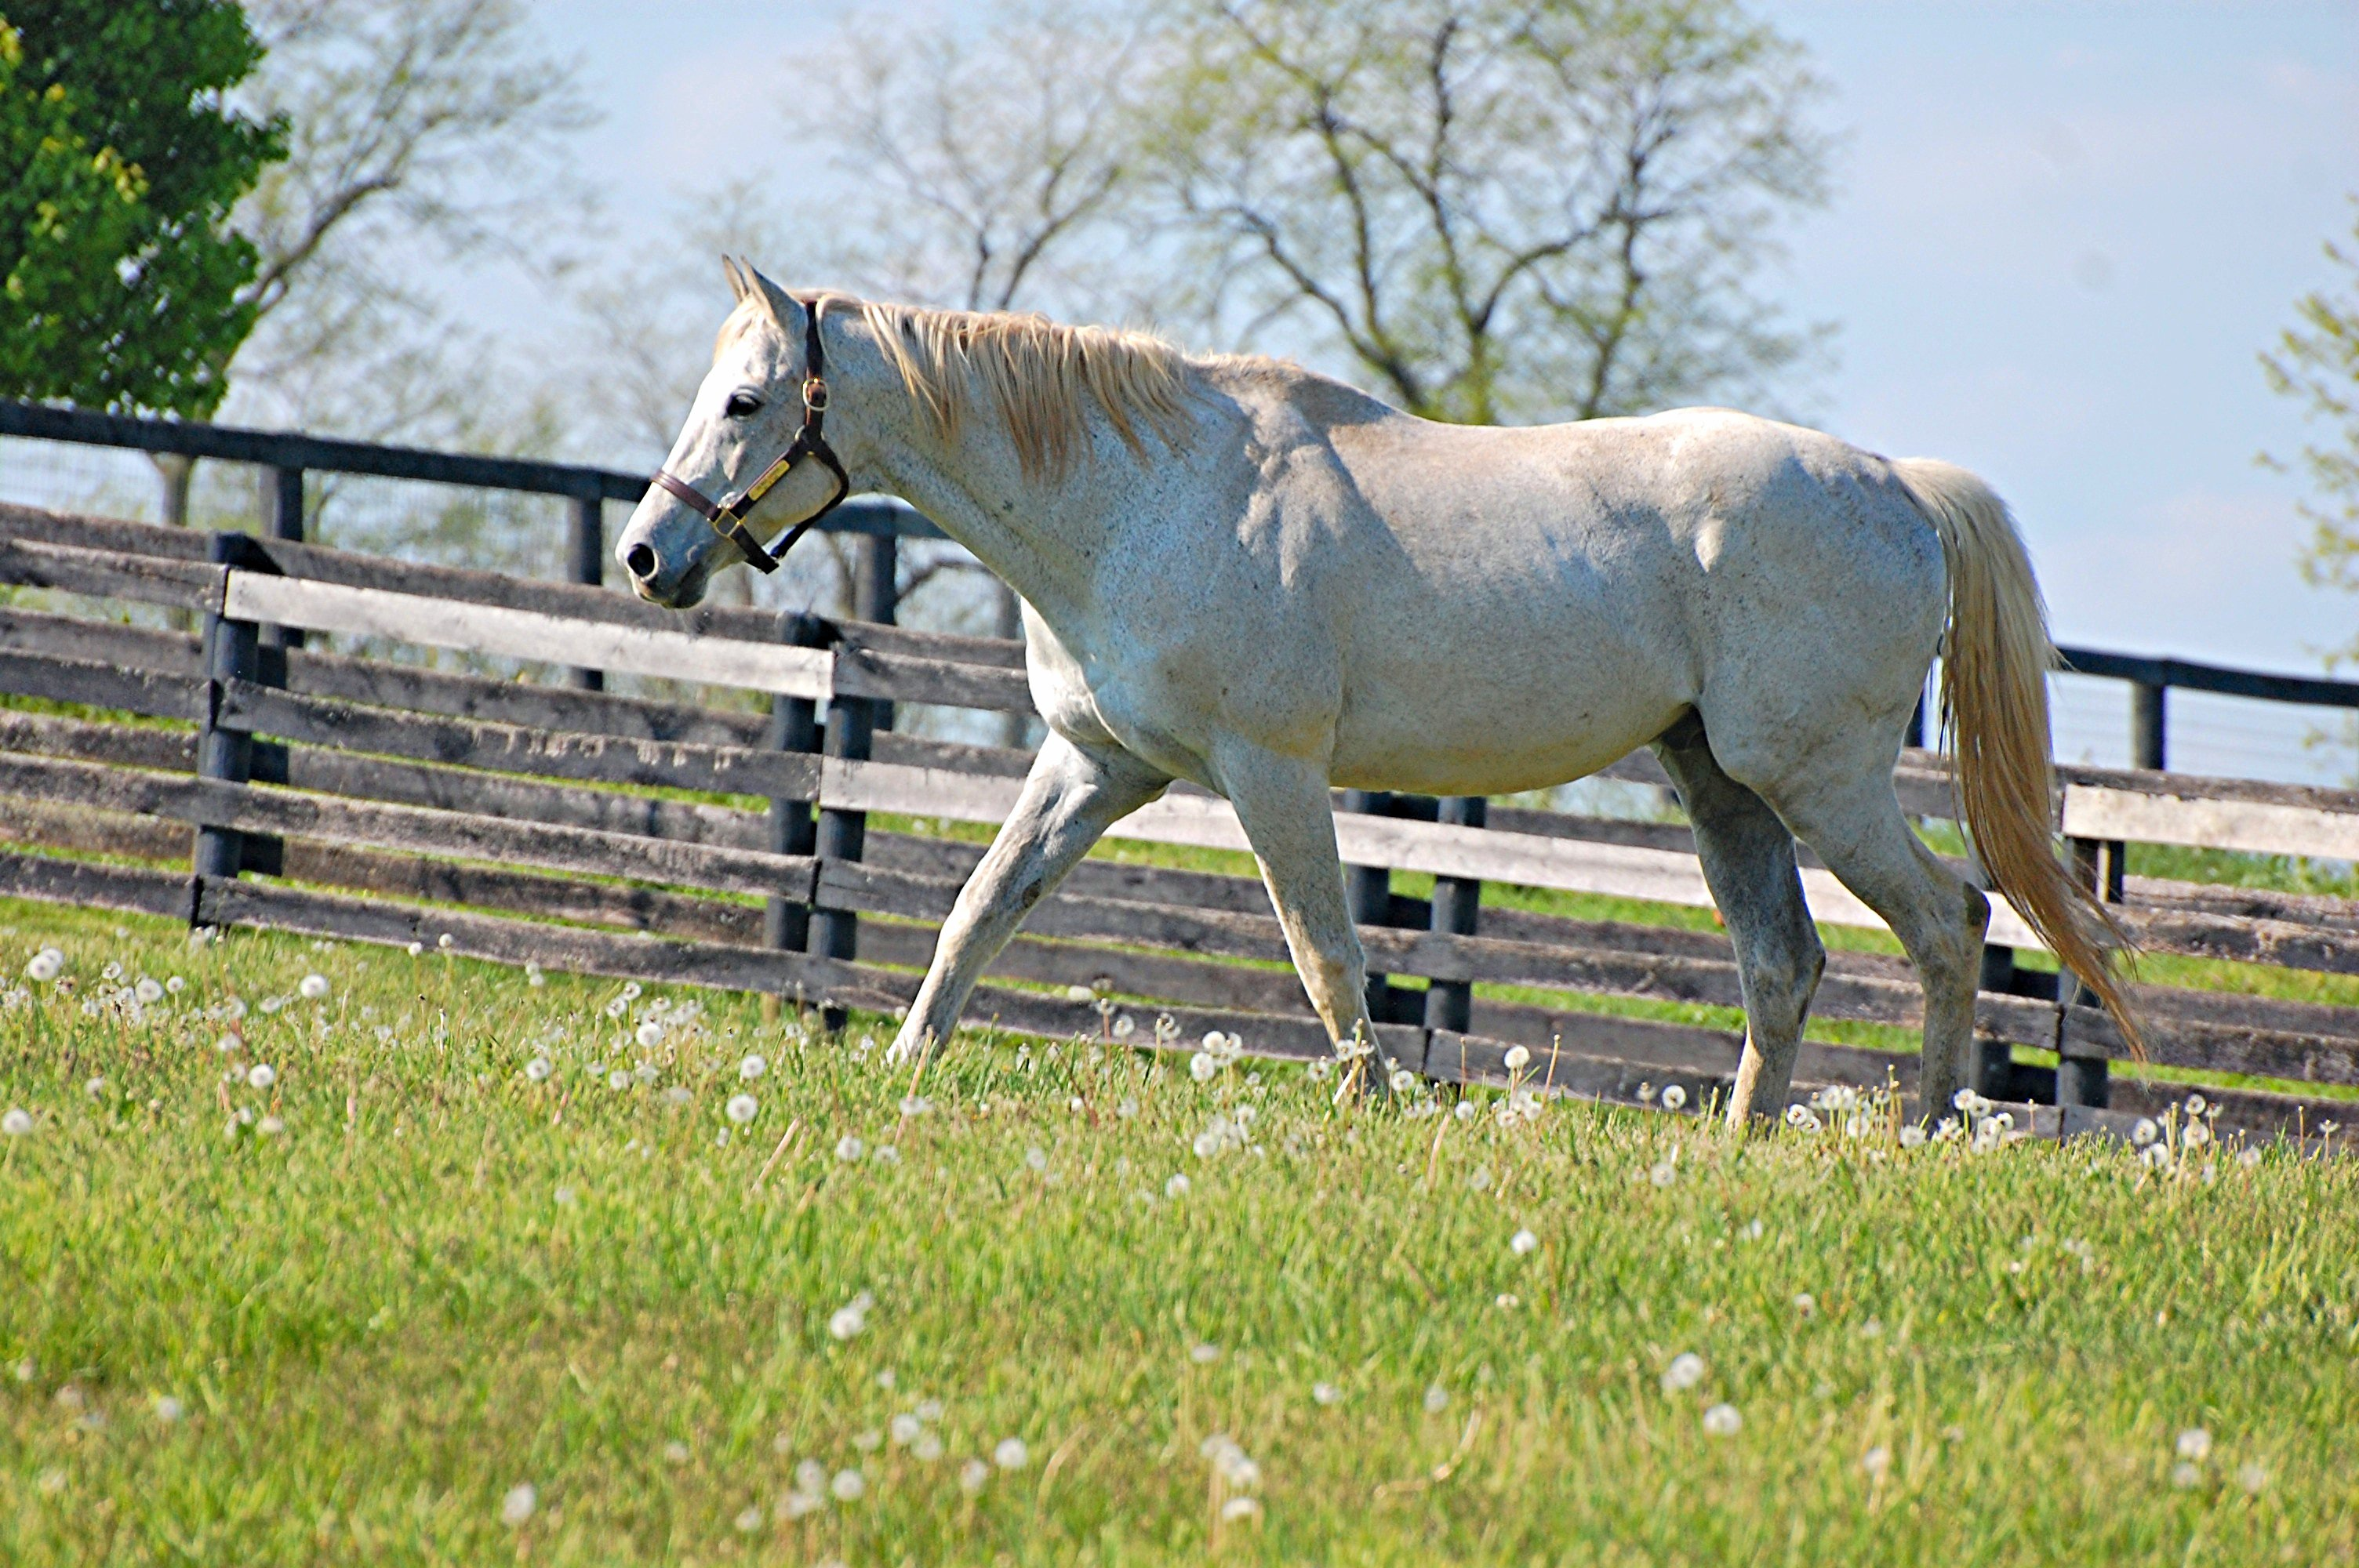 Silver Charm at Old Friends in Georgetown, Kentucky, 2016 (Rick Capone)